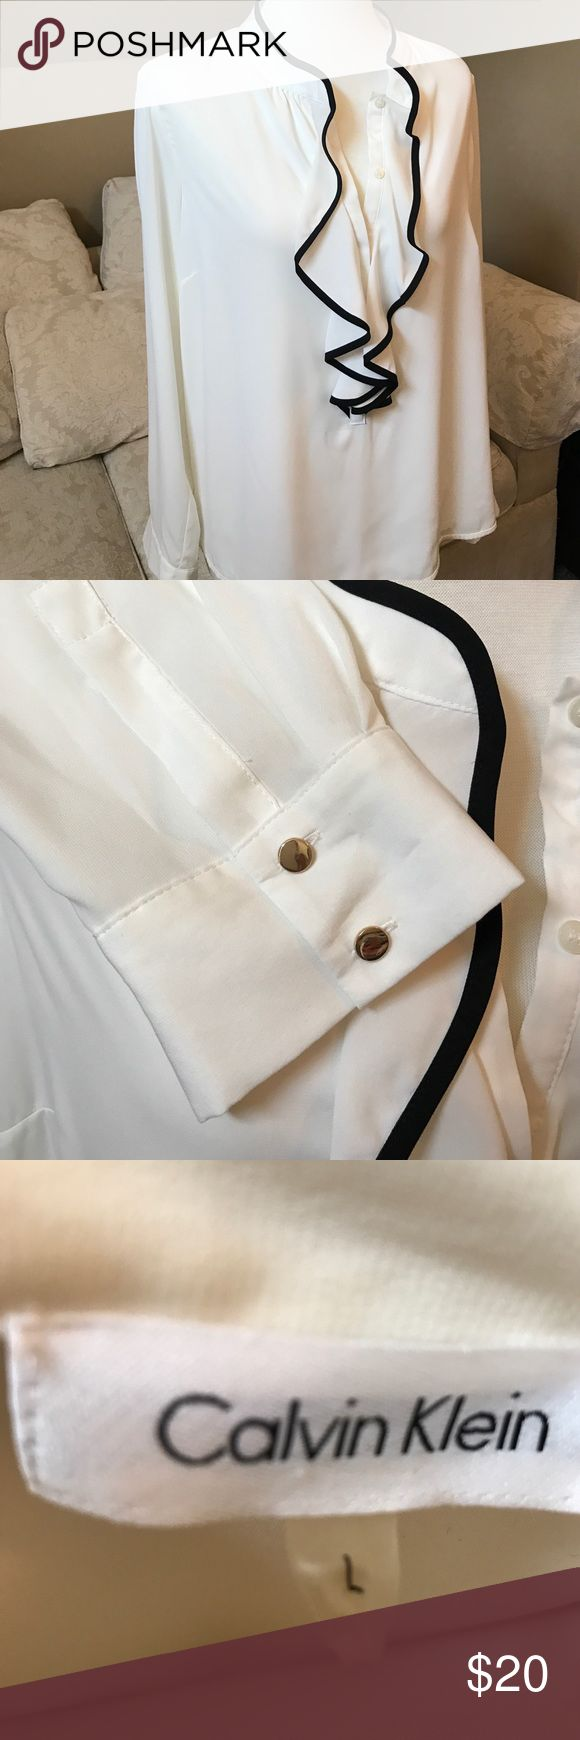 Calvin Klein women's cream color blouse Beautiful blouse. Casual with jeans or for work. Calvin Klein Tops Blouses